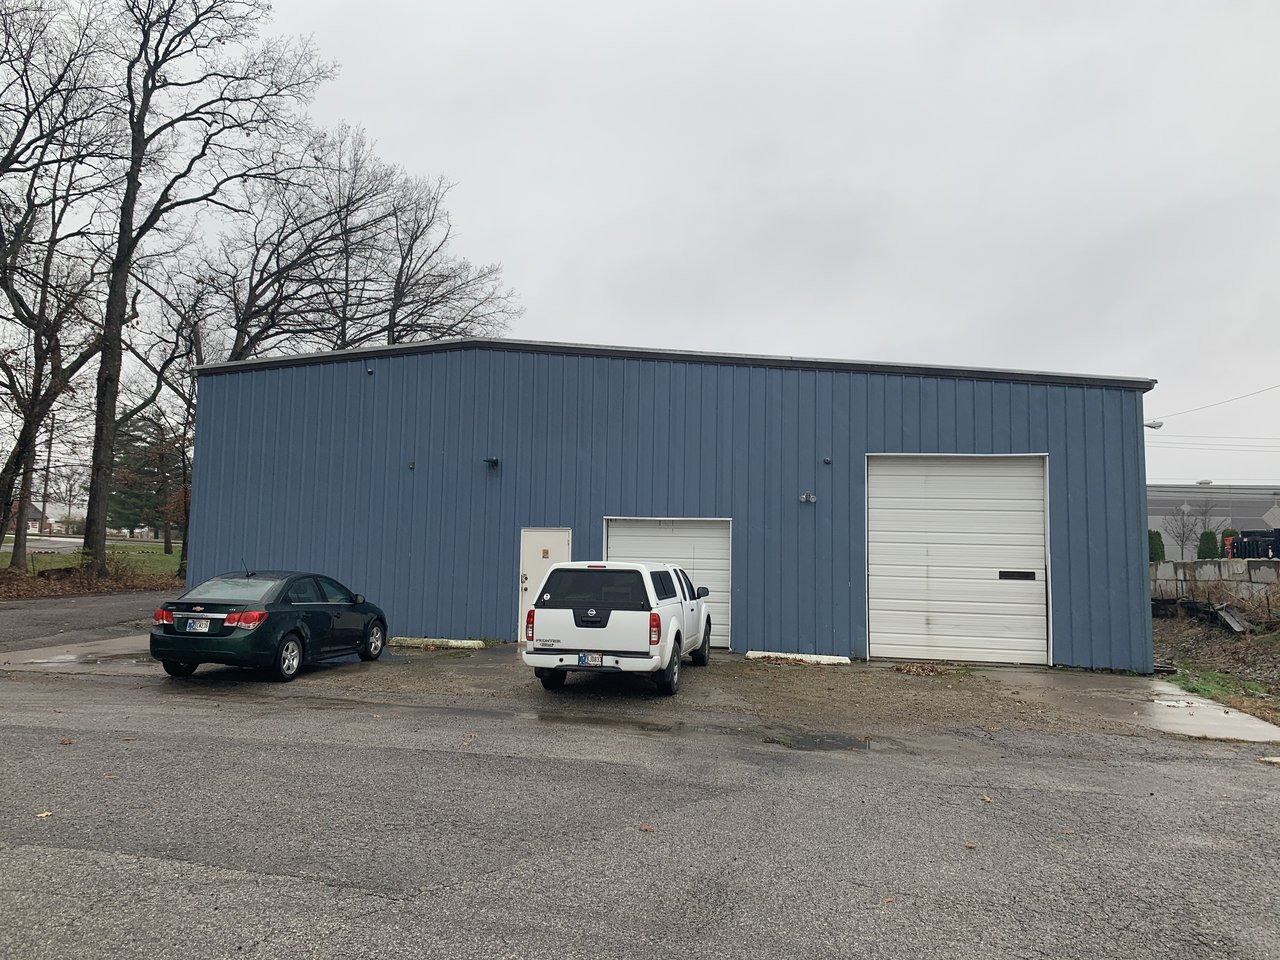 430 Industrial Blvd, New Albany, IN, 47150